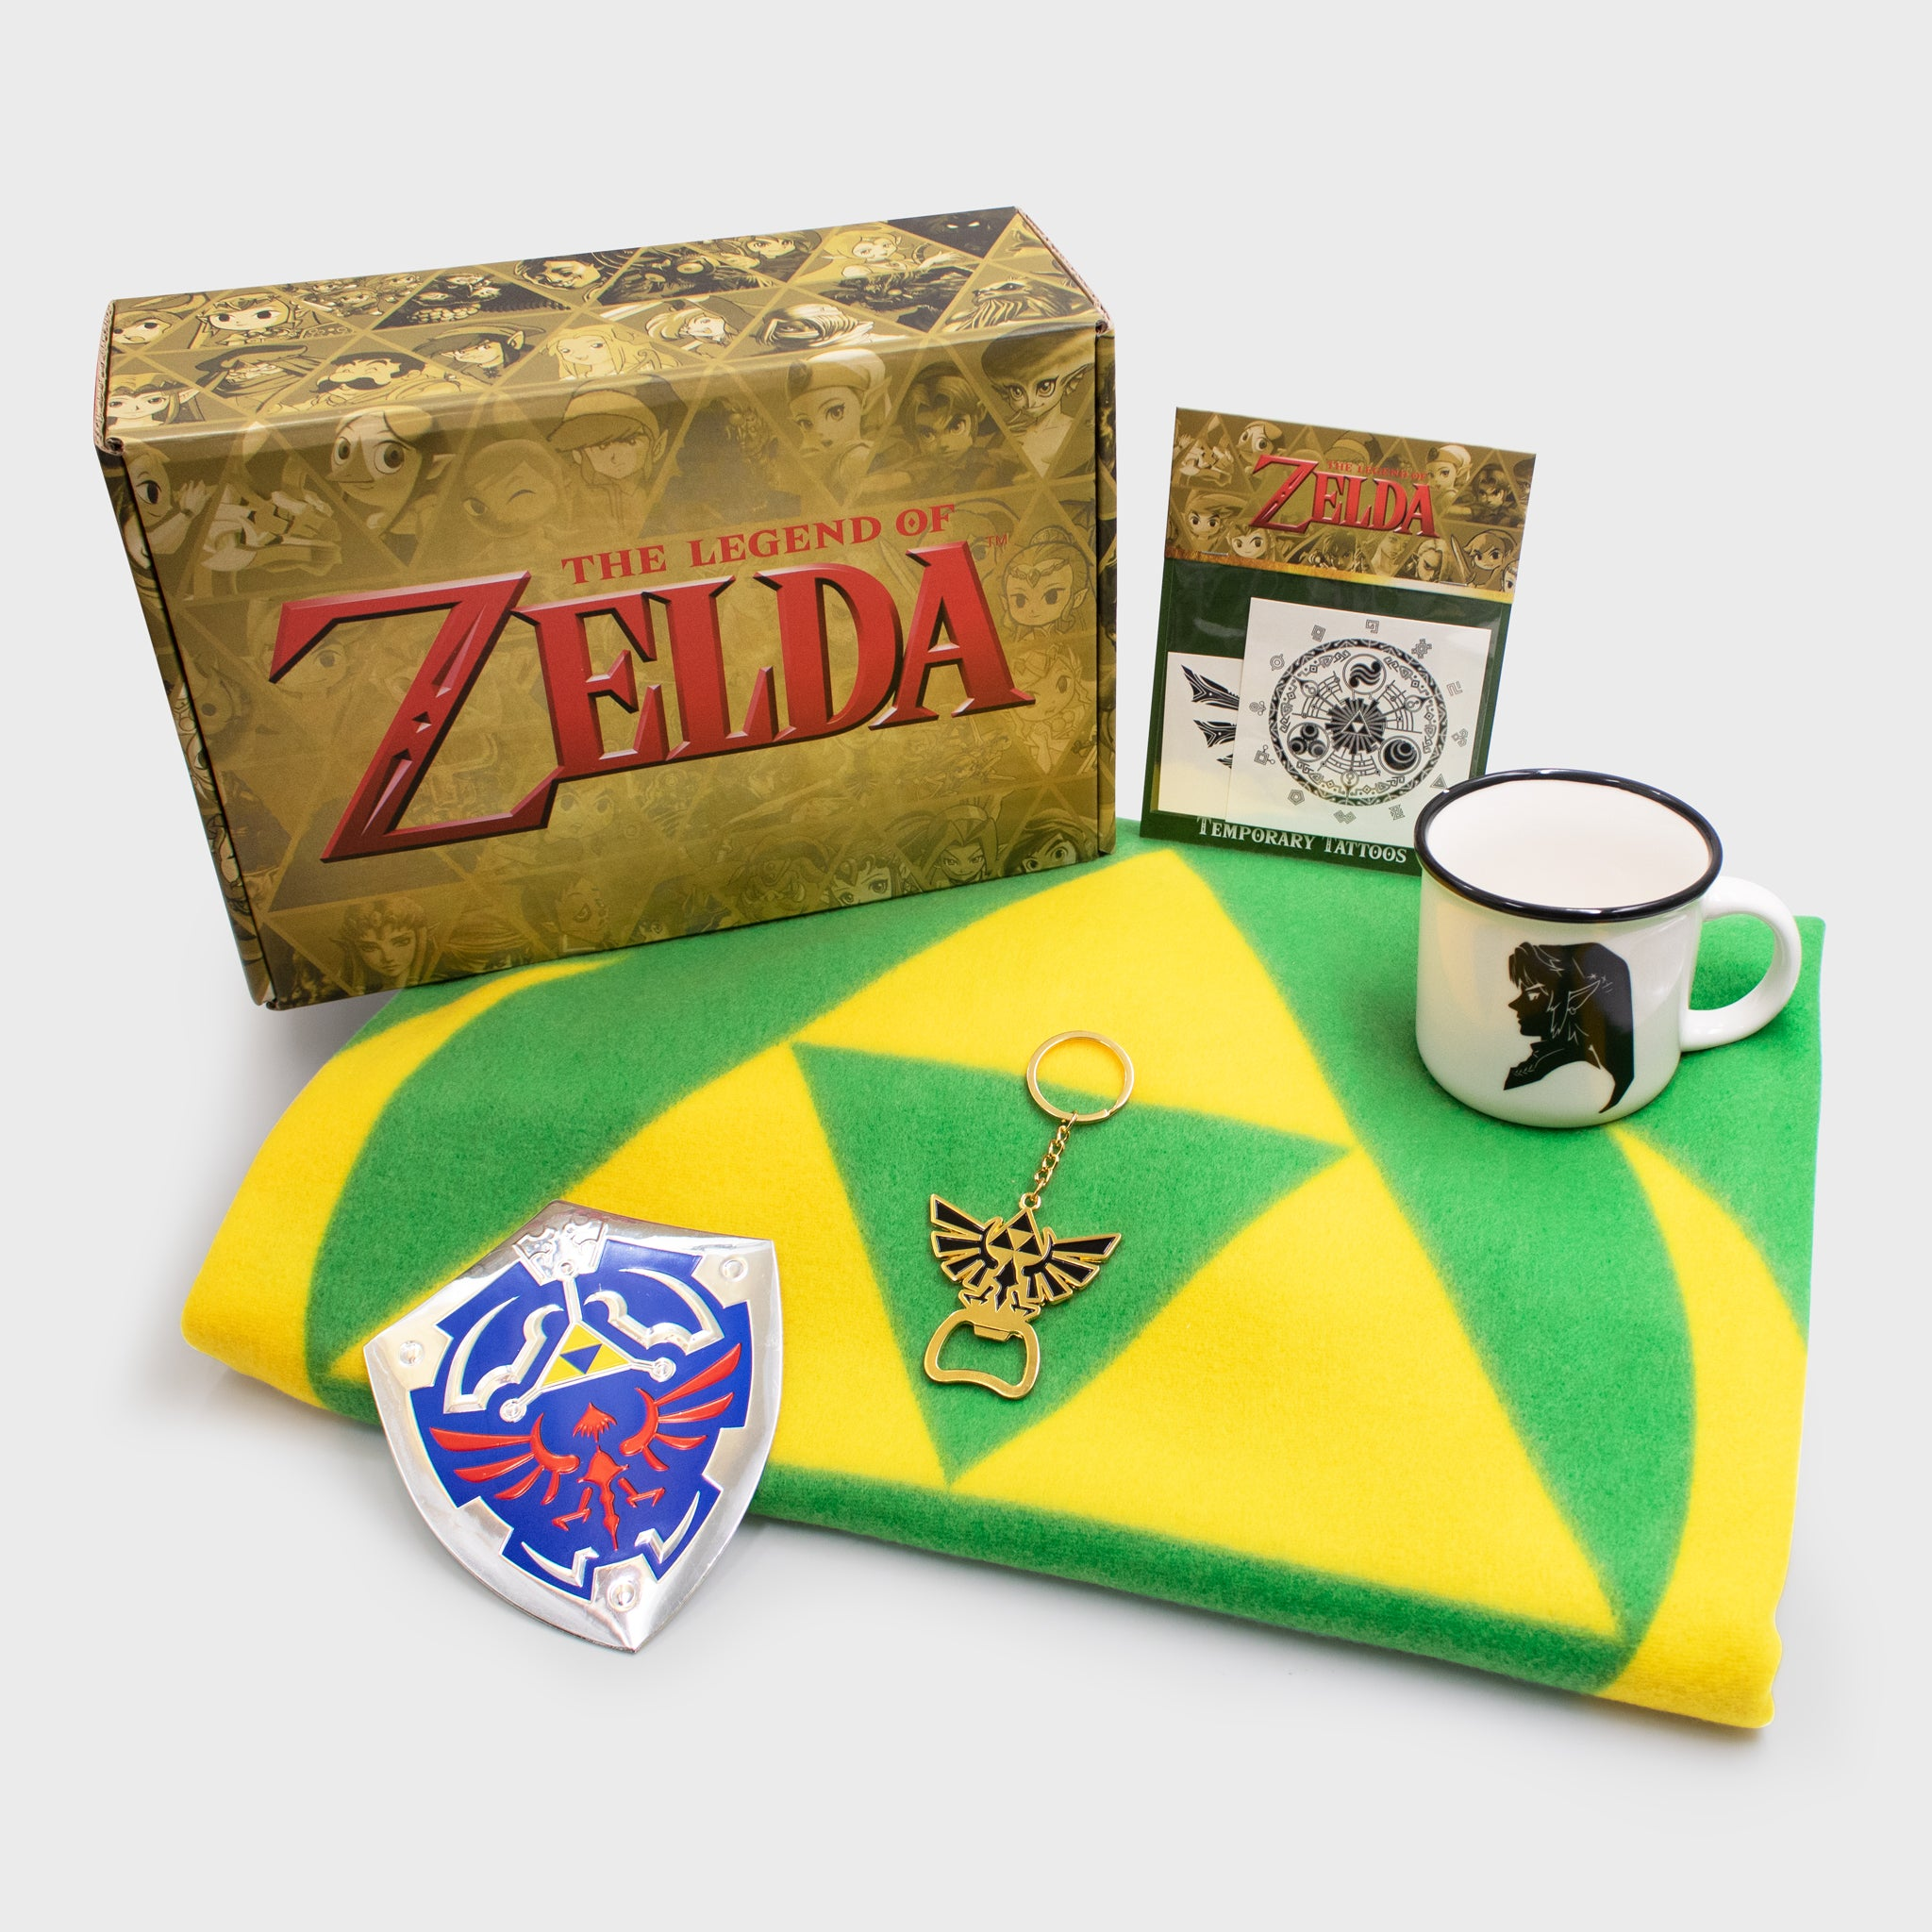 the legend of zelda loz nintendo video games hyrule link royal family evergreen collectors box accessories collectibles culturefly